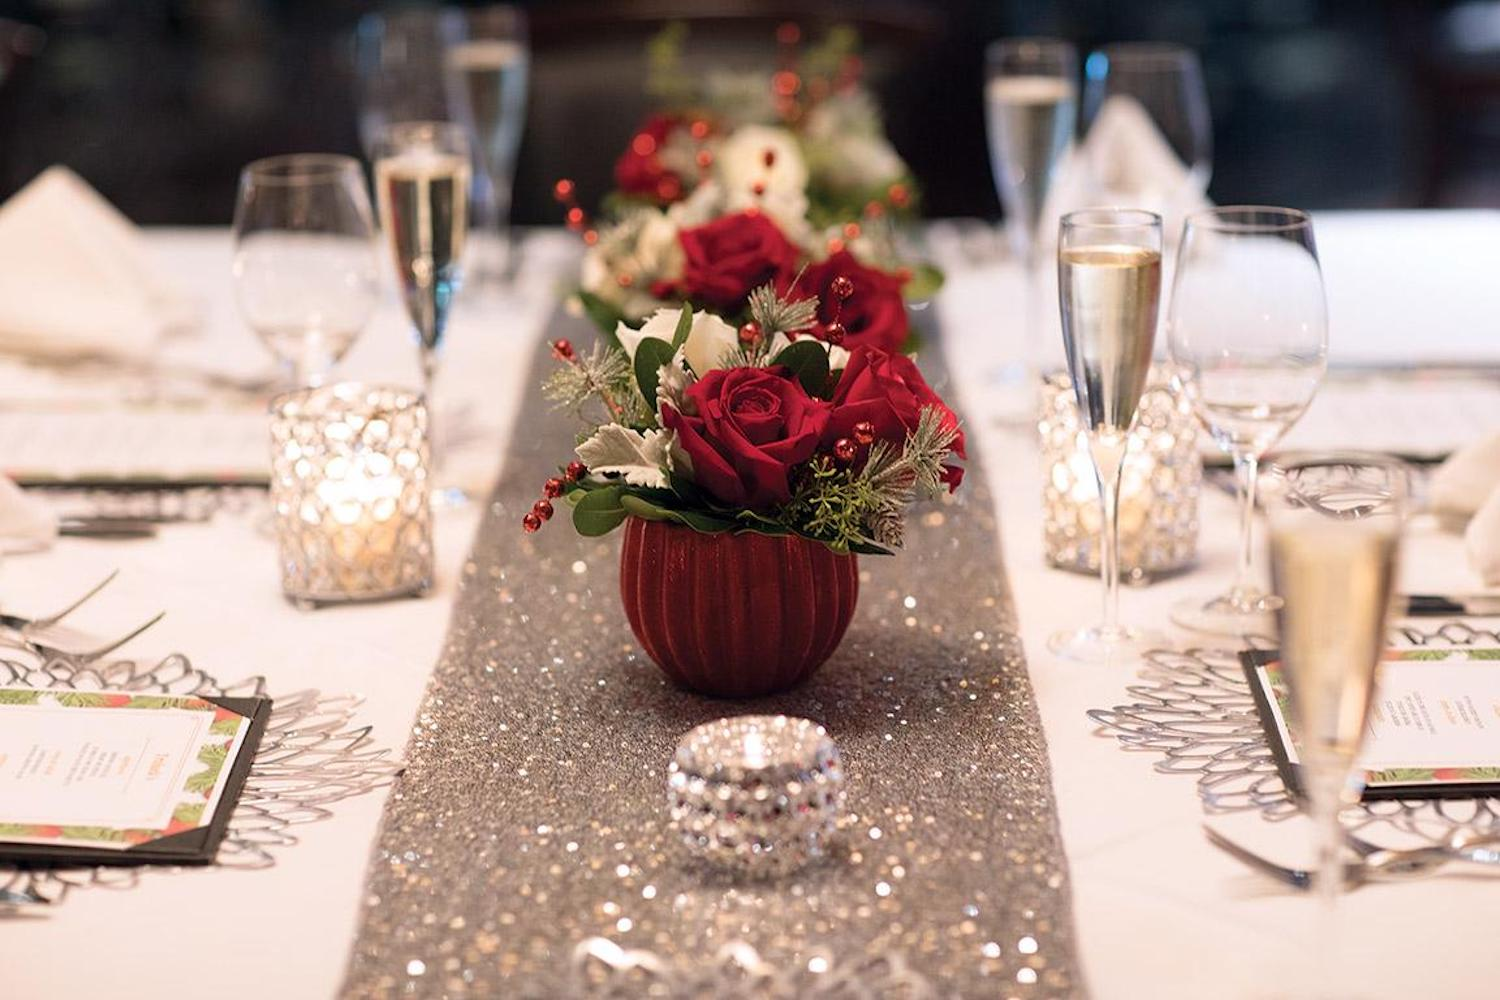 Detail of a formal table setting at a private event